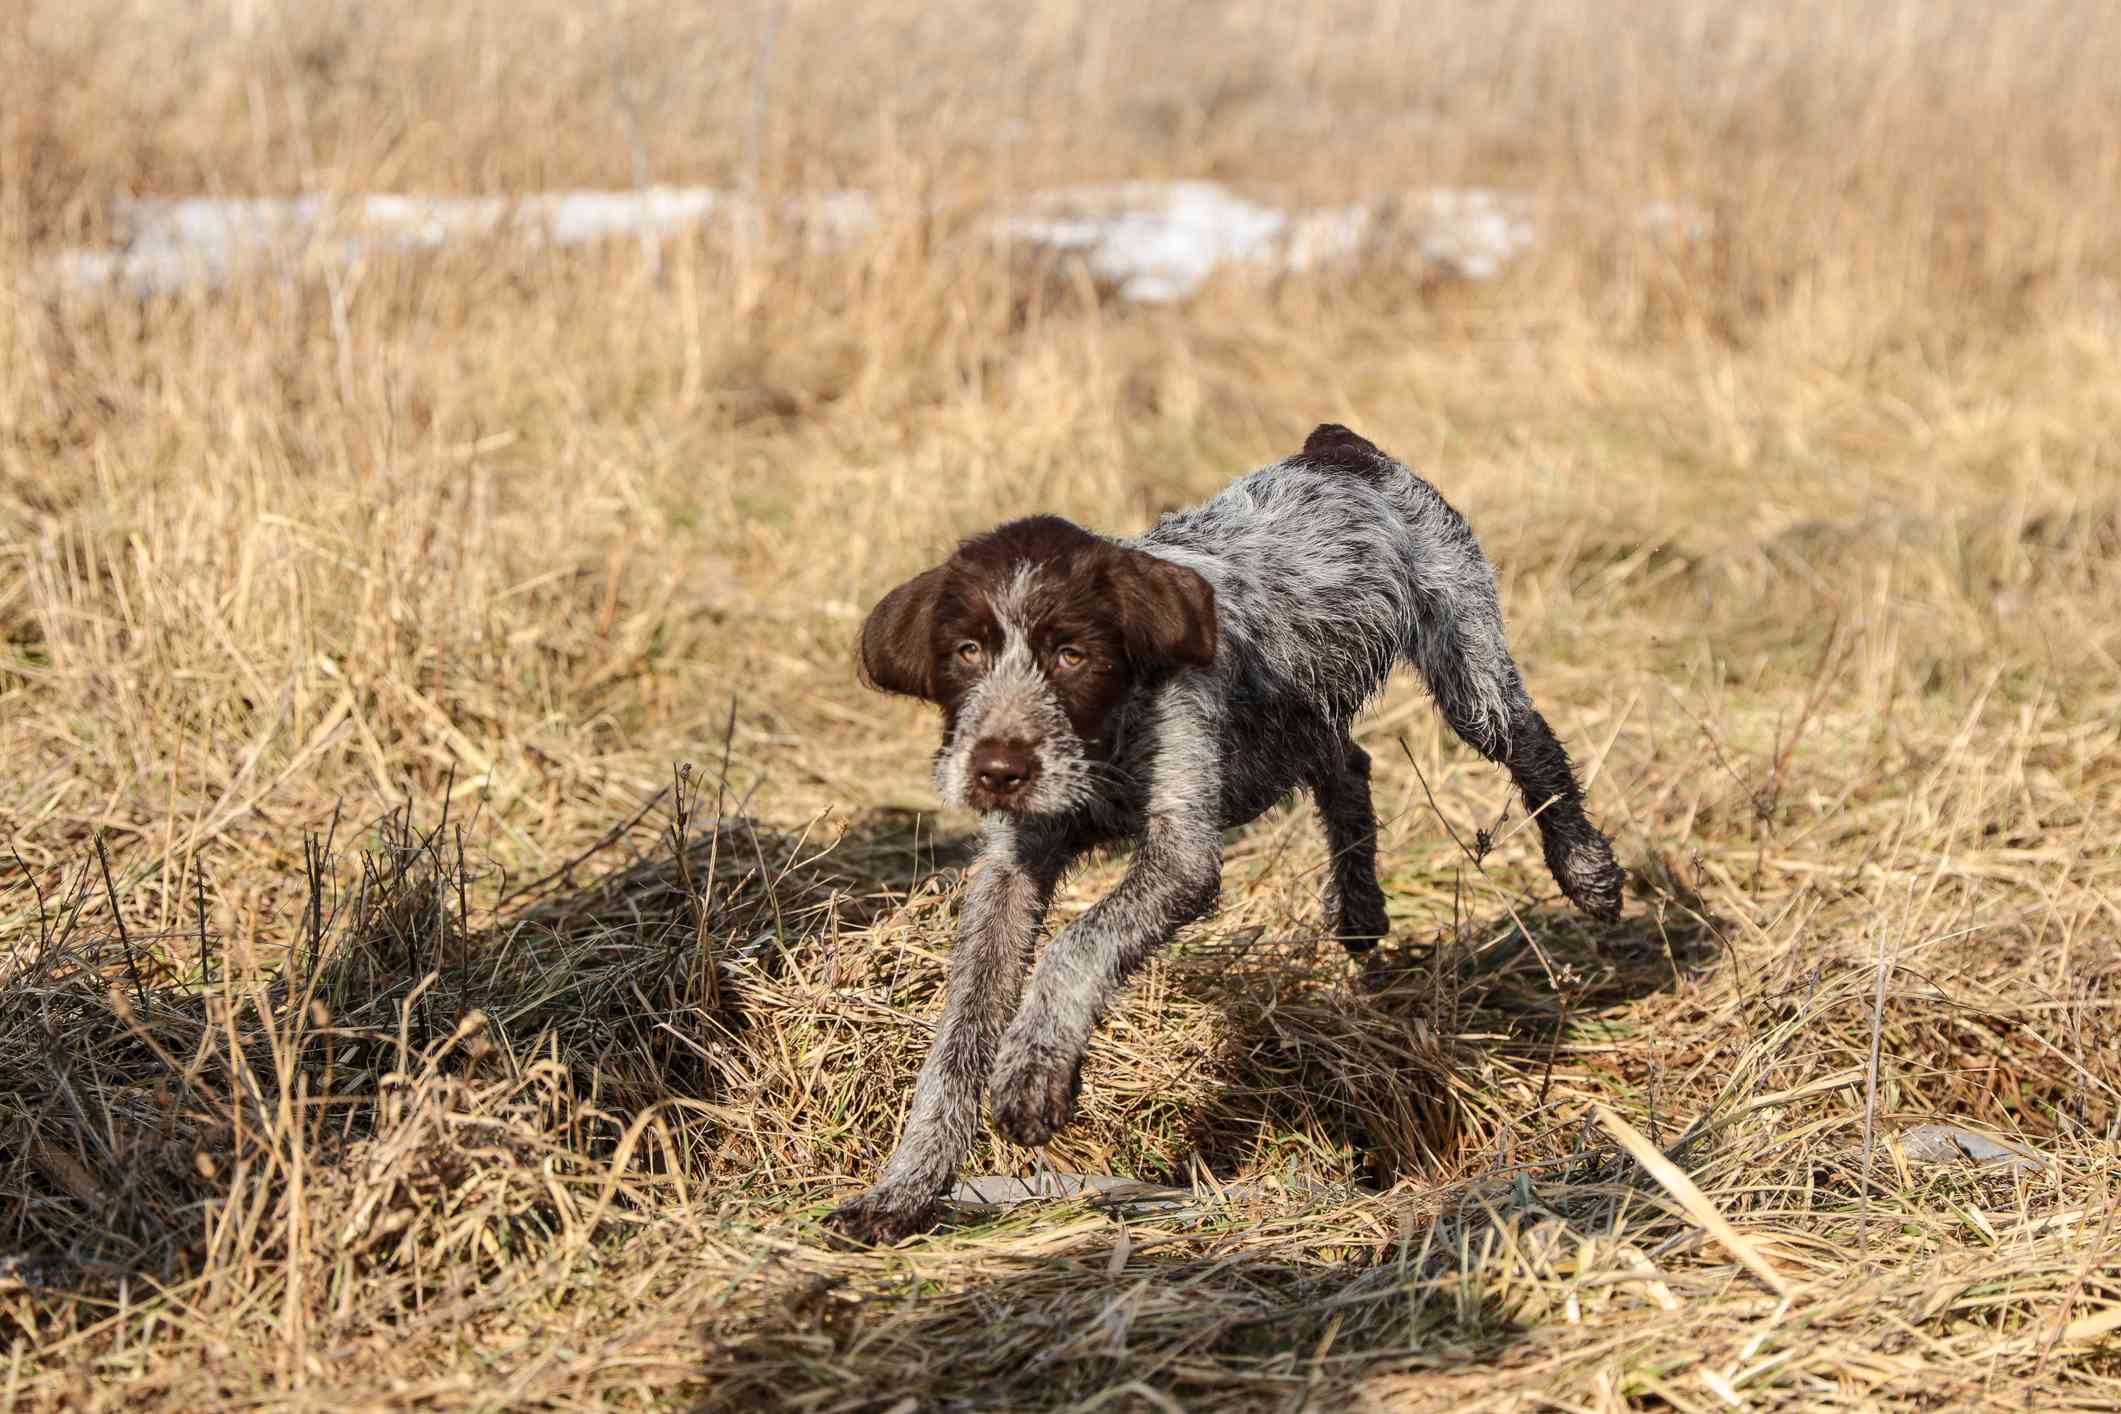 Wirehaired pointing griffon running in a field.